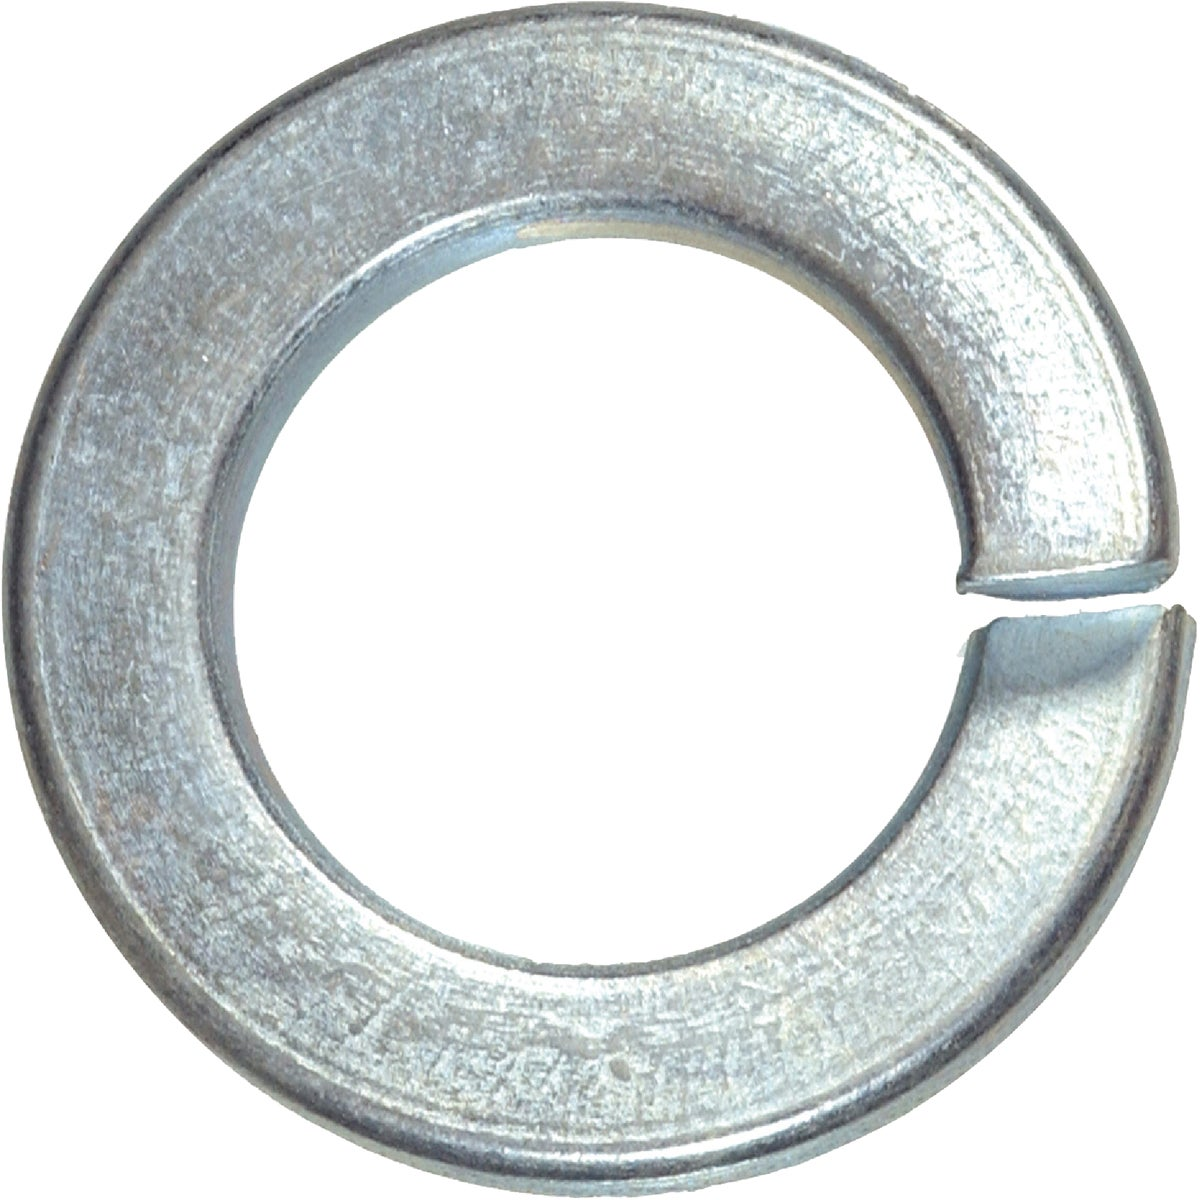 #8 STEEL LOCK WASHER - 6600 by Hillman Fastener